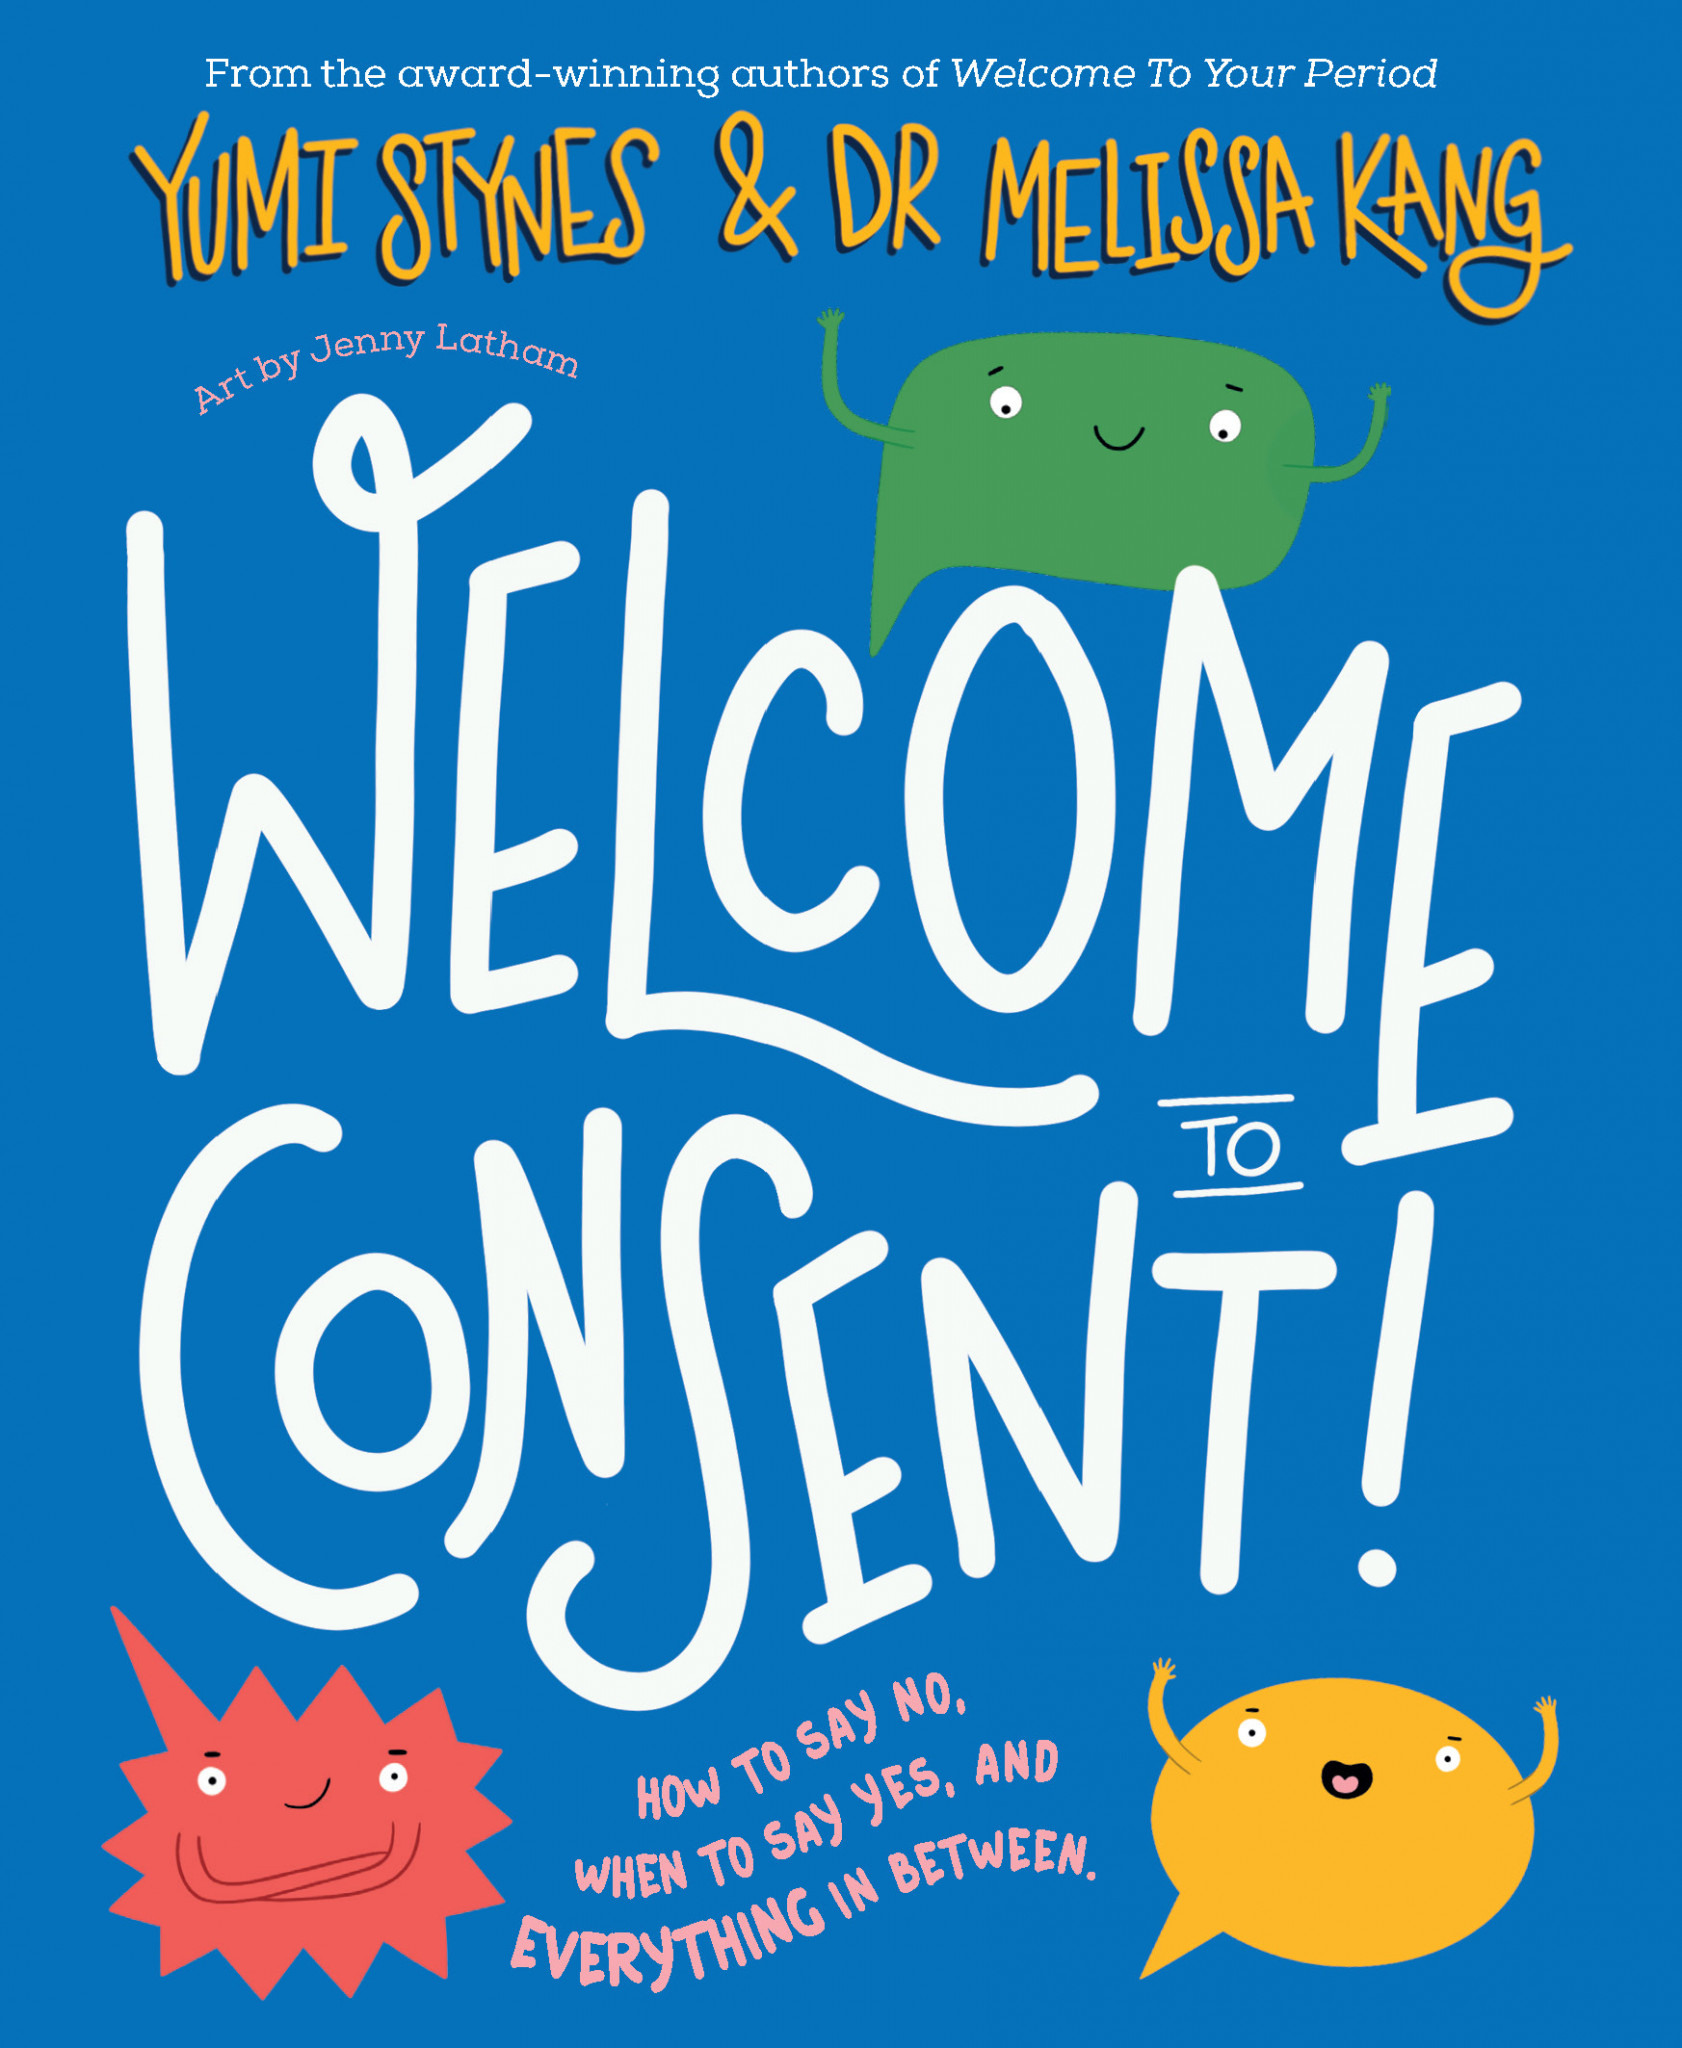 Welcome to consent!